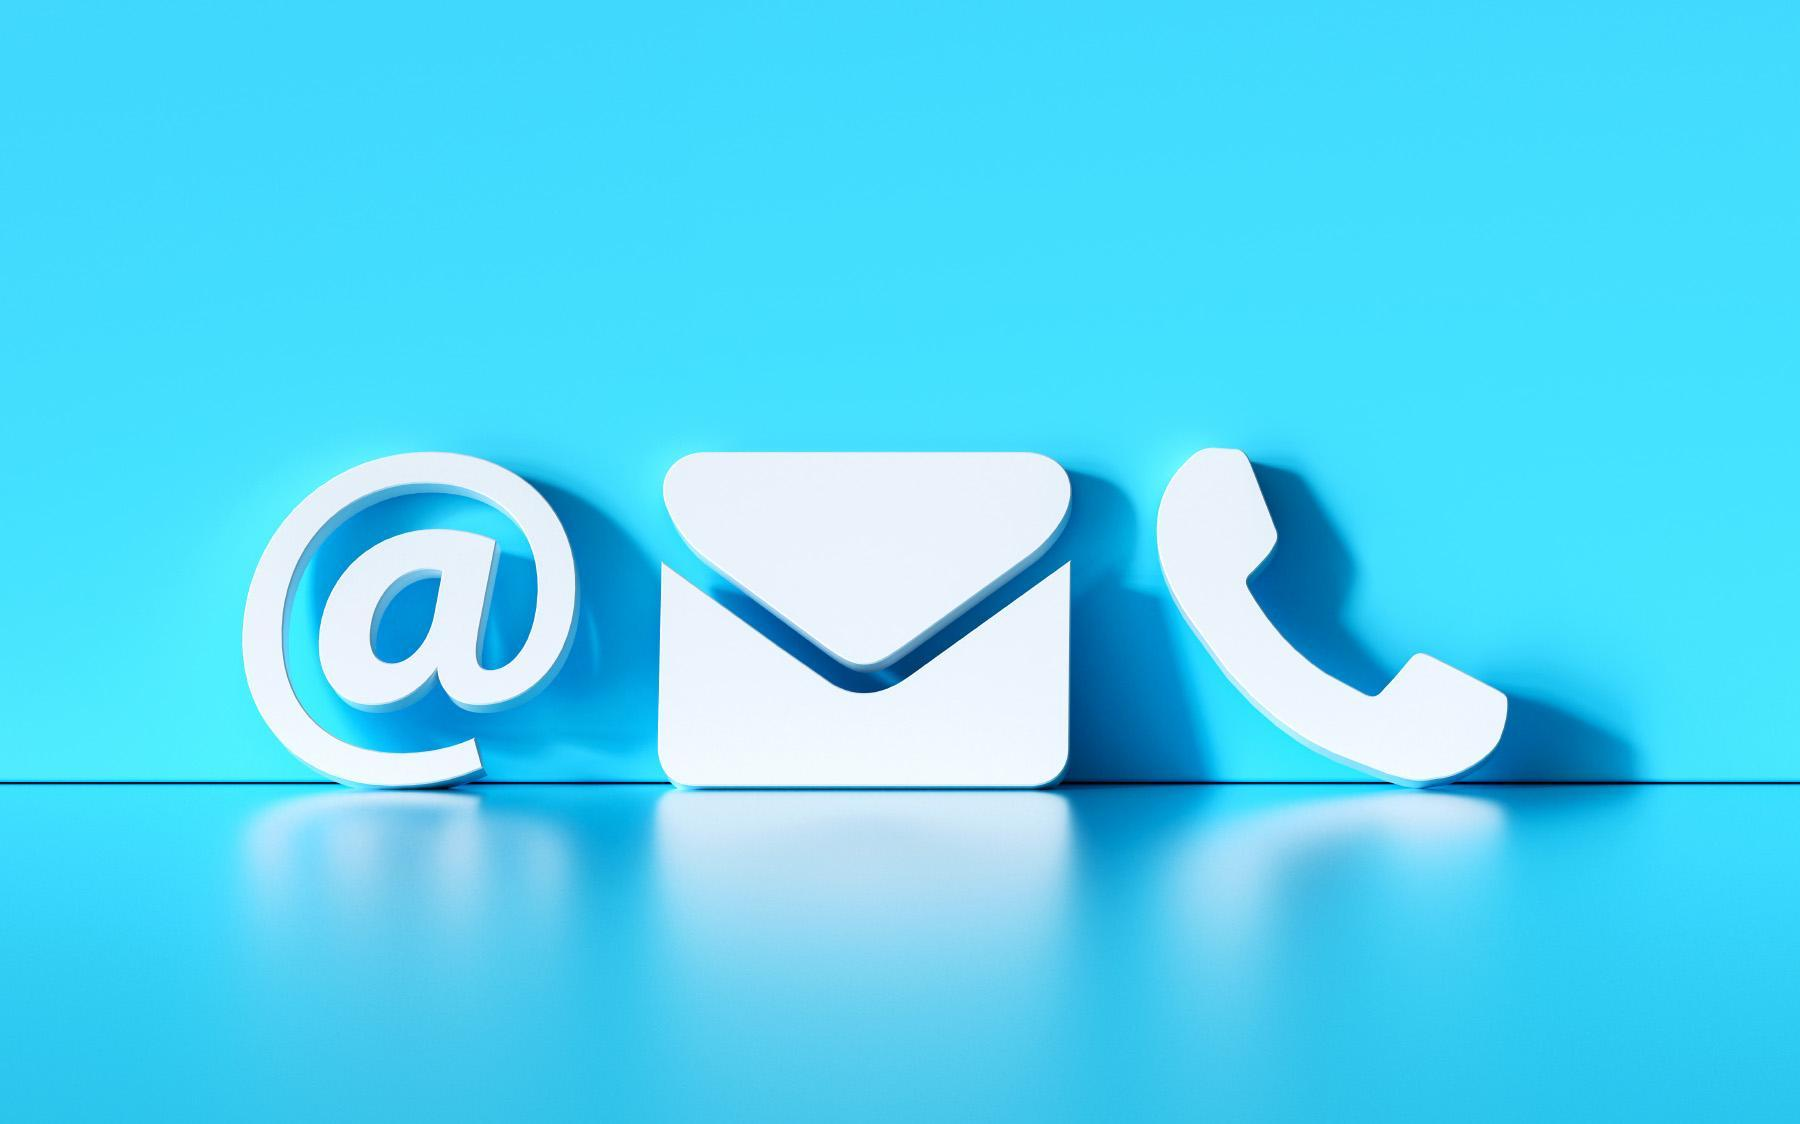 E-mail, phone, and mail icons against a blue backdrop